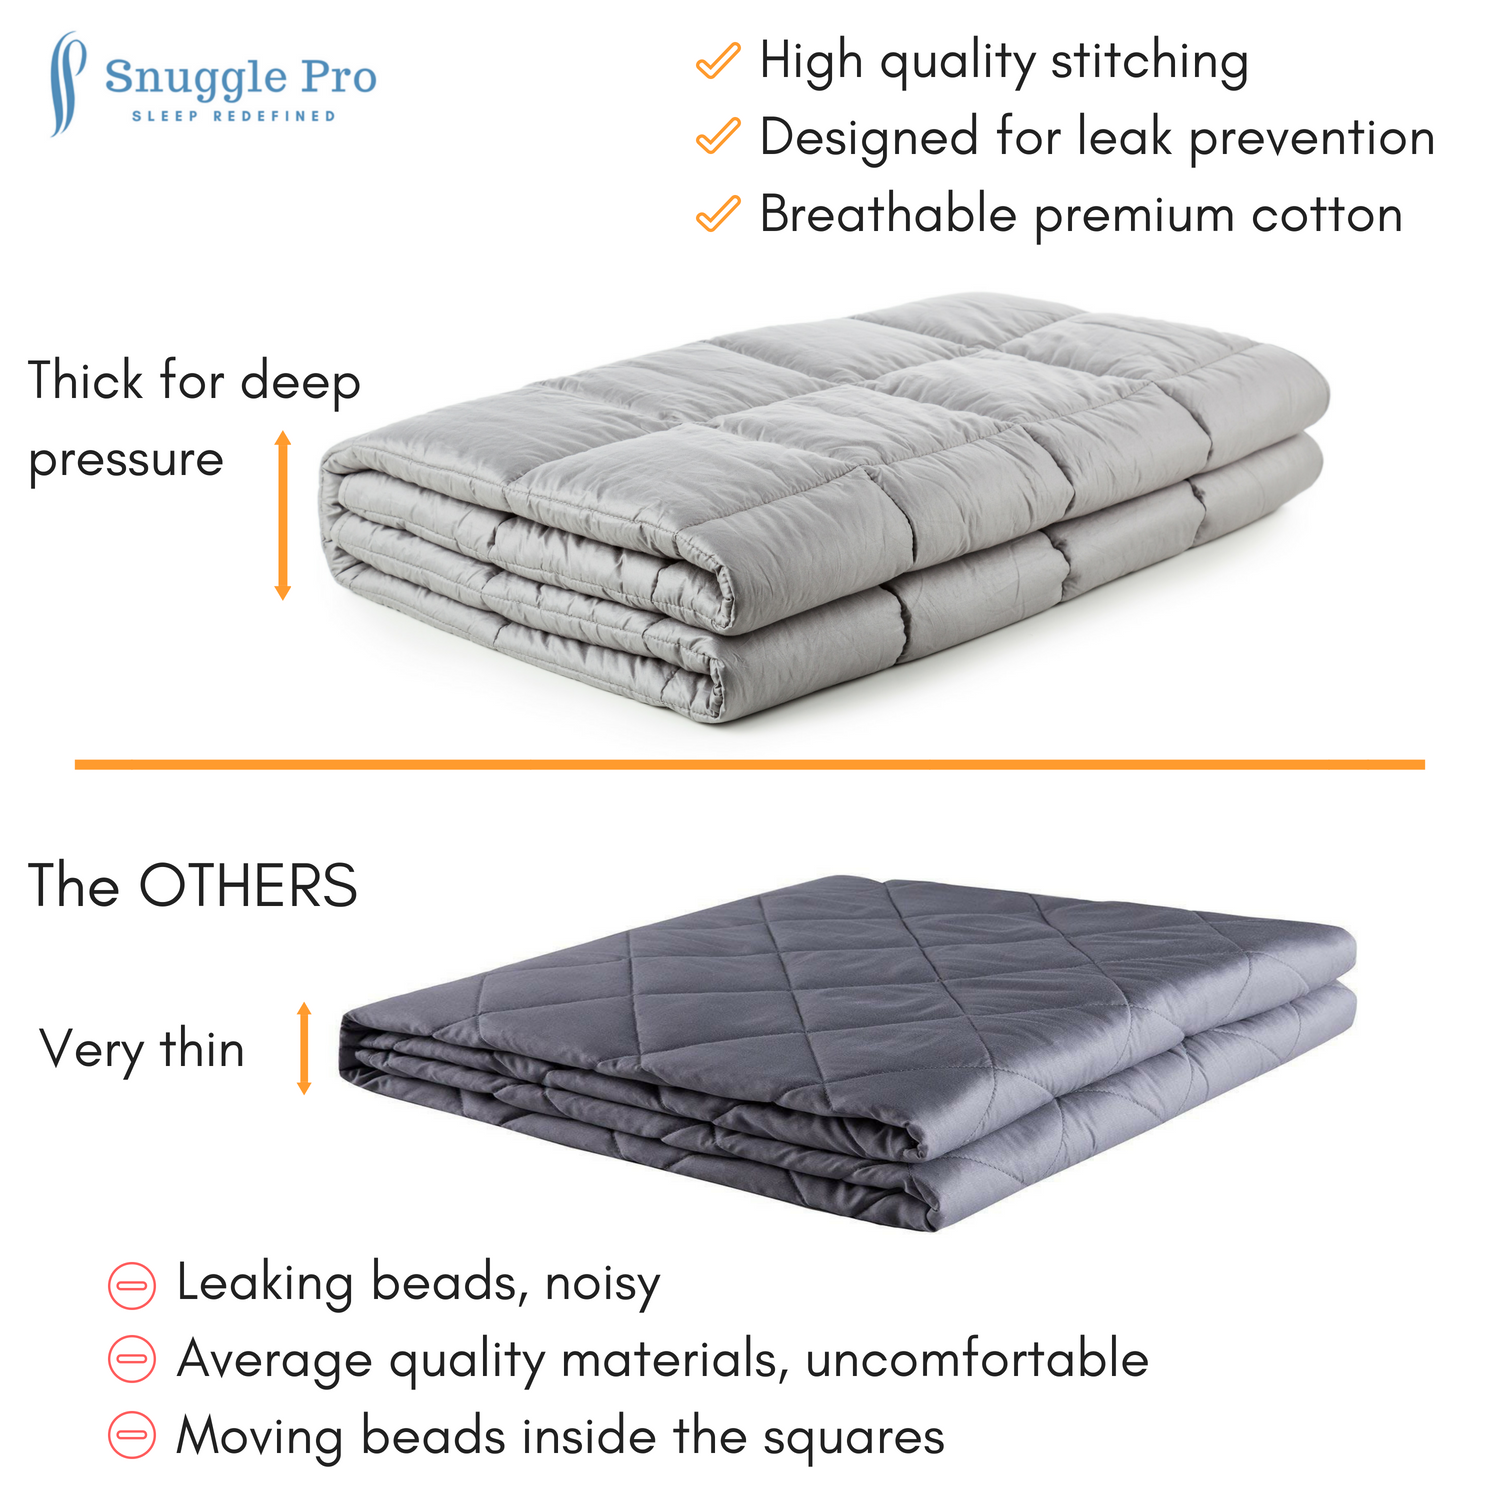 Premium Heavy Cooling Weighted Blanket For Teens, Adults & Couples